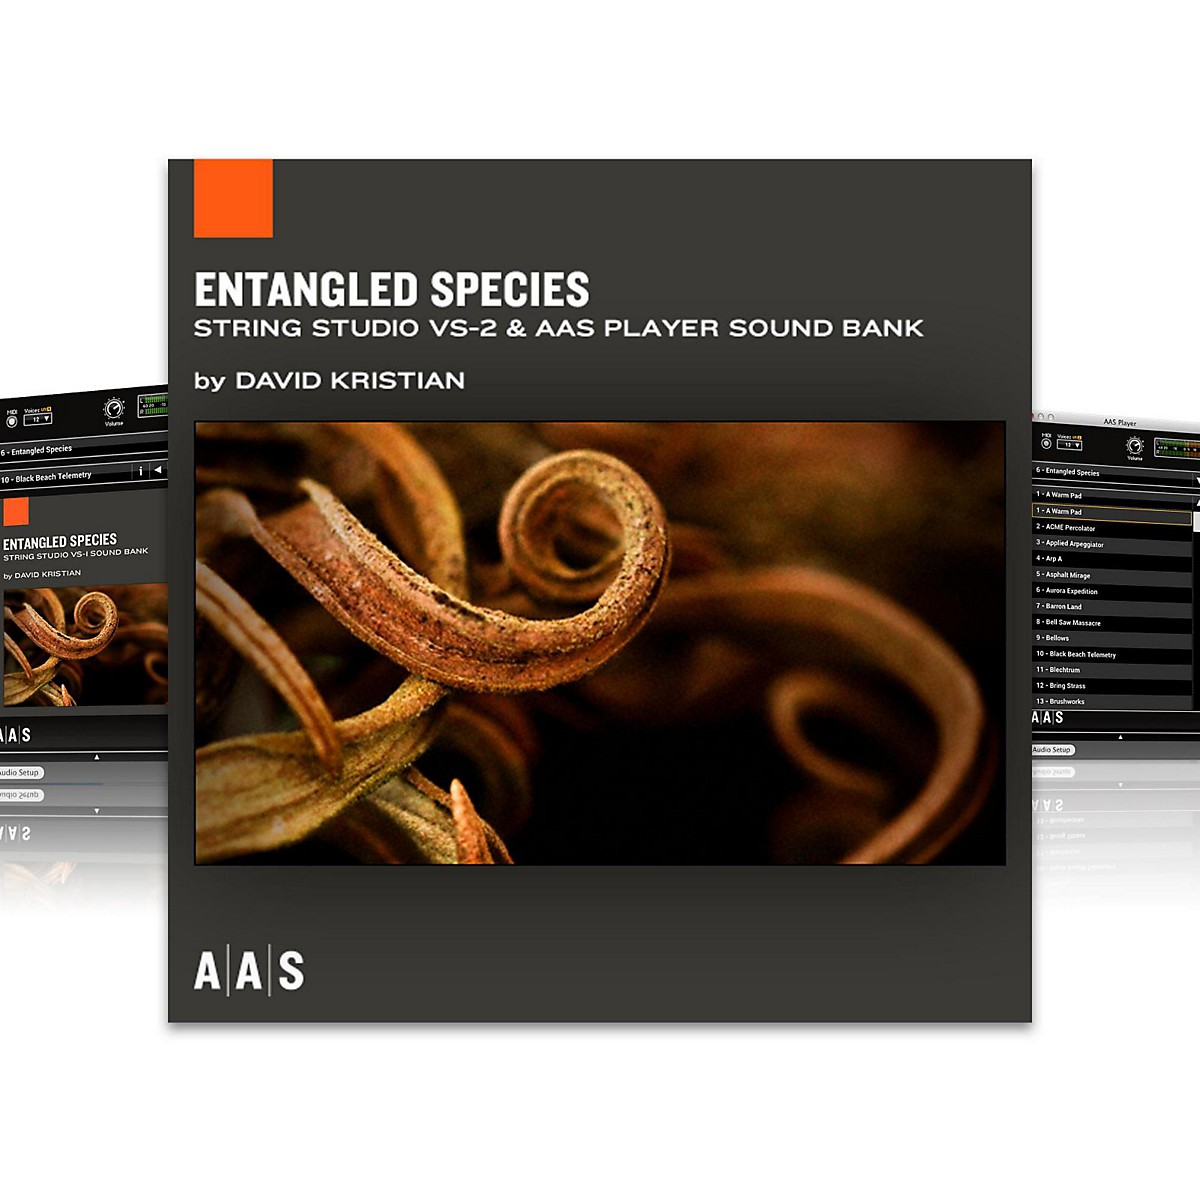 Applied Acoustics Systems Sound Bank Series String Studio VS-2 - Entangled Species